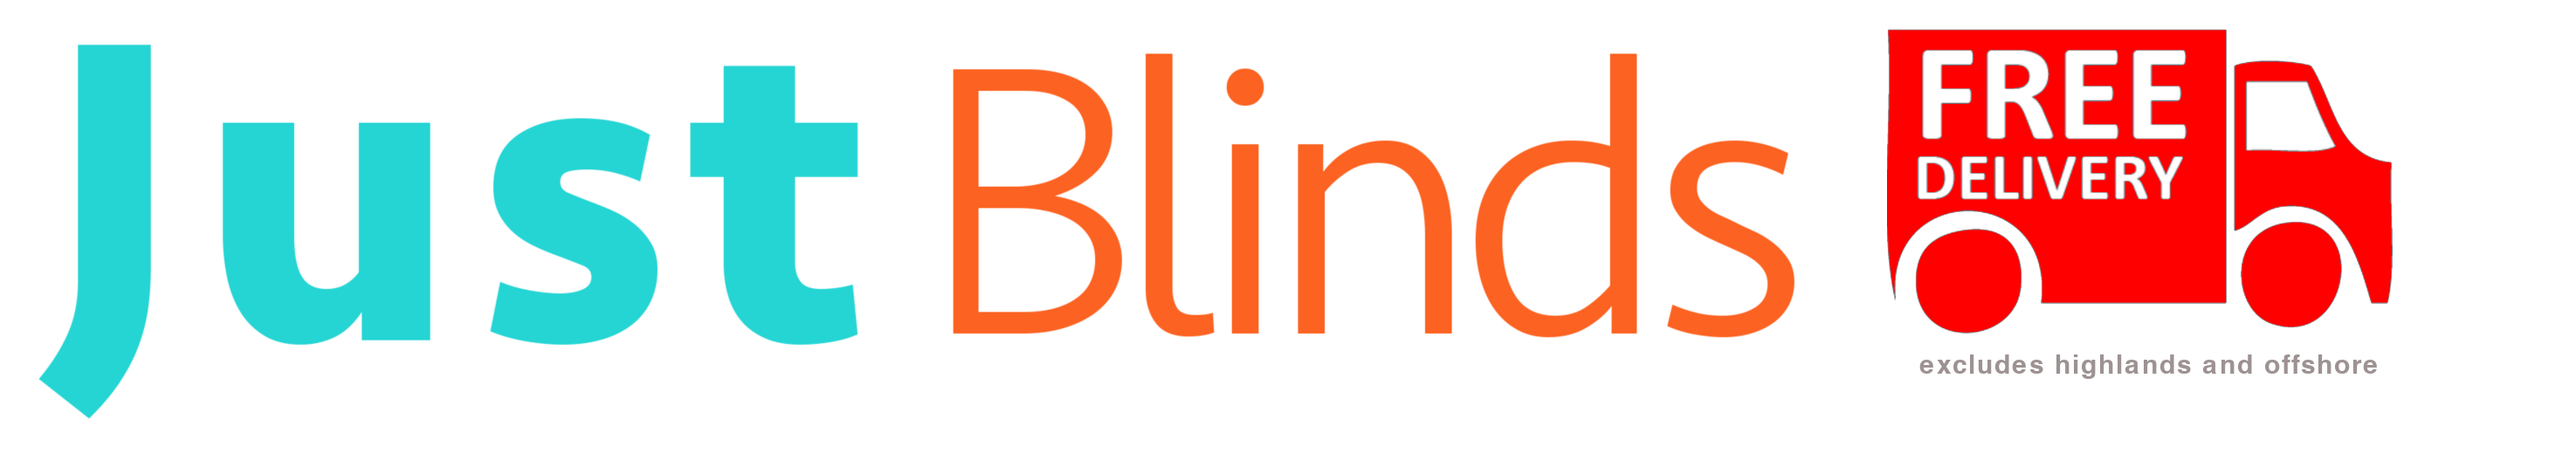 Just Blinds - Buy Made To Measure Blinds Online